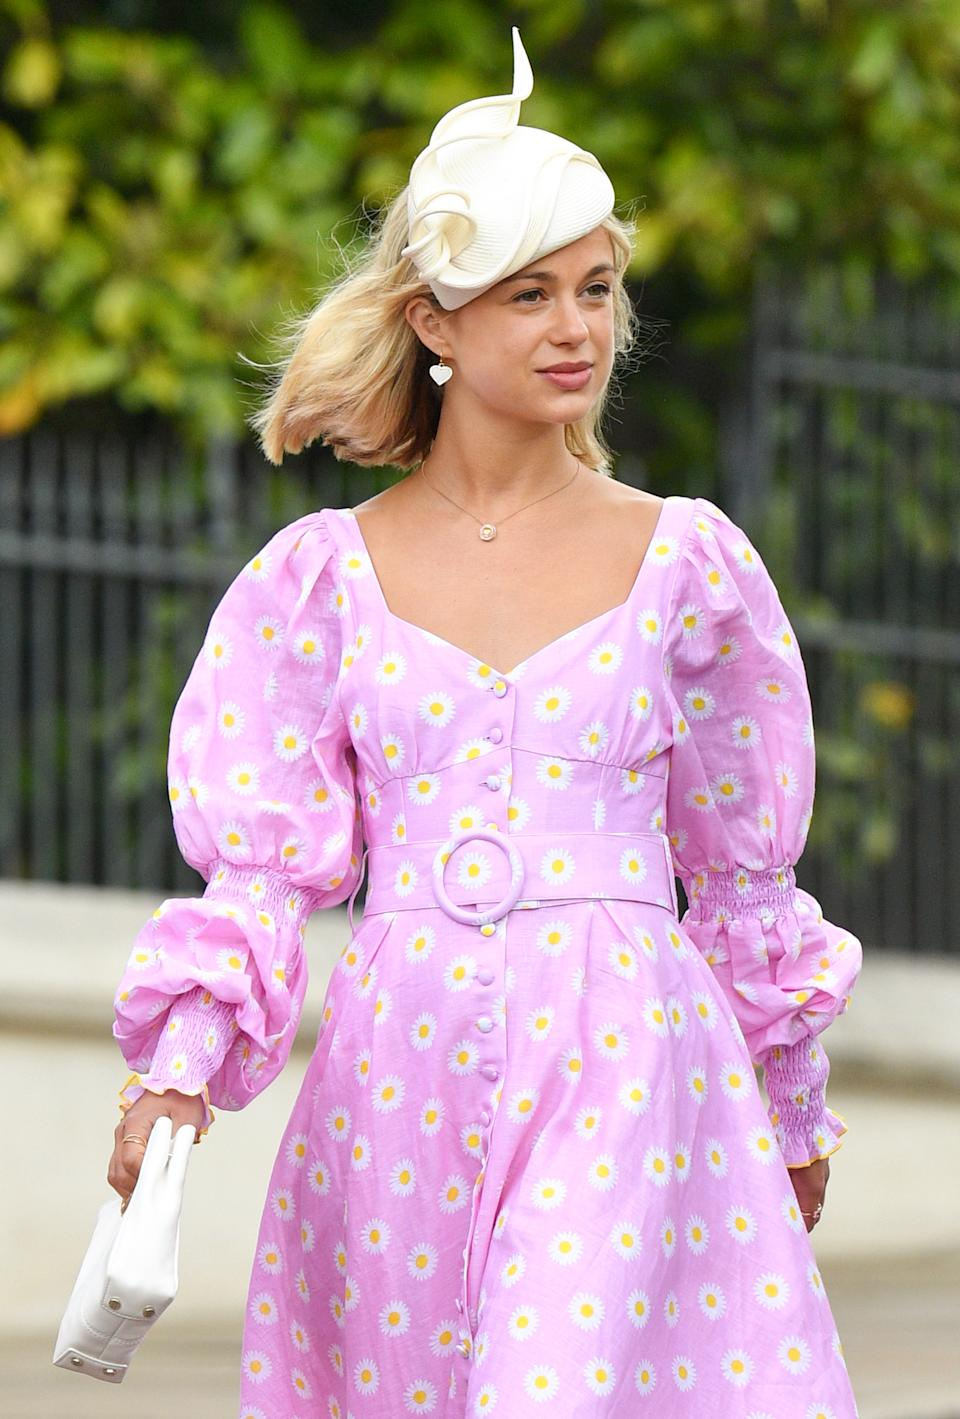 WINDSOR, UNITED KINGDOM - MAY 18: (EMBARGOED FOR PUBLICATION IN UK NEWSPAPERS UNTIL 24 HOURS AFTER CREATE DATE AND TIME) Lady Amelia Windsor attends the wedding of Lady Gabriella Windsor and Thomas Kingston at St George's Chapel on May 18, 2019 in Windsor, England. (Photo by Pool/Max Mumby/Getty Images)